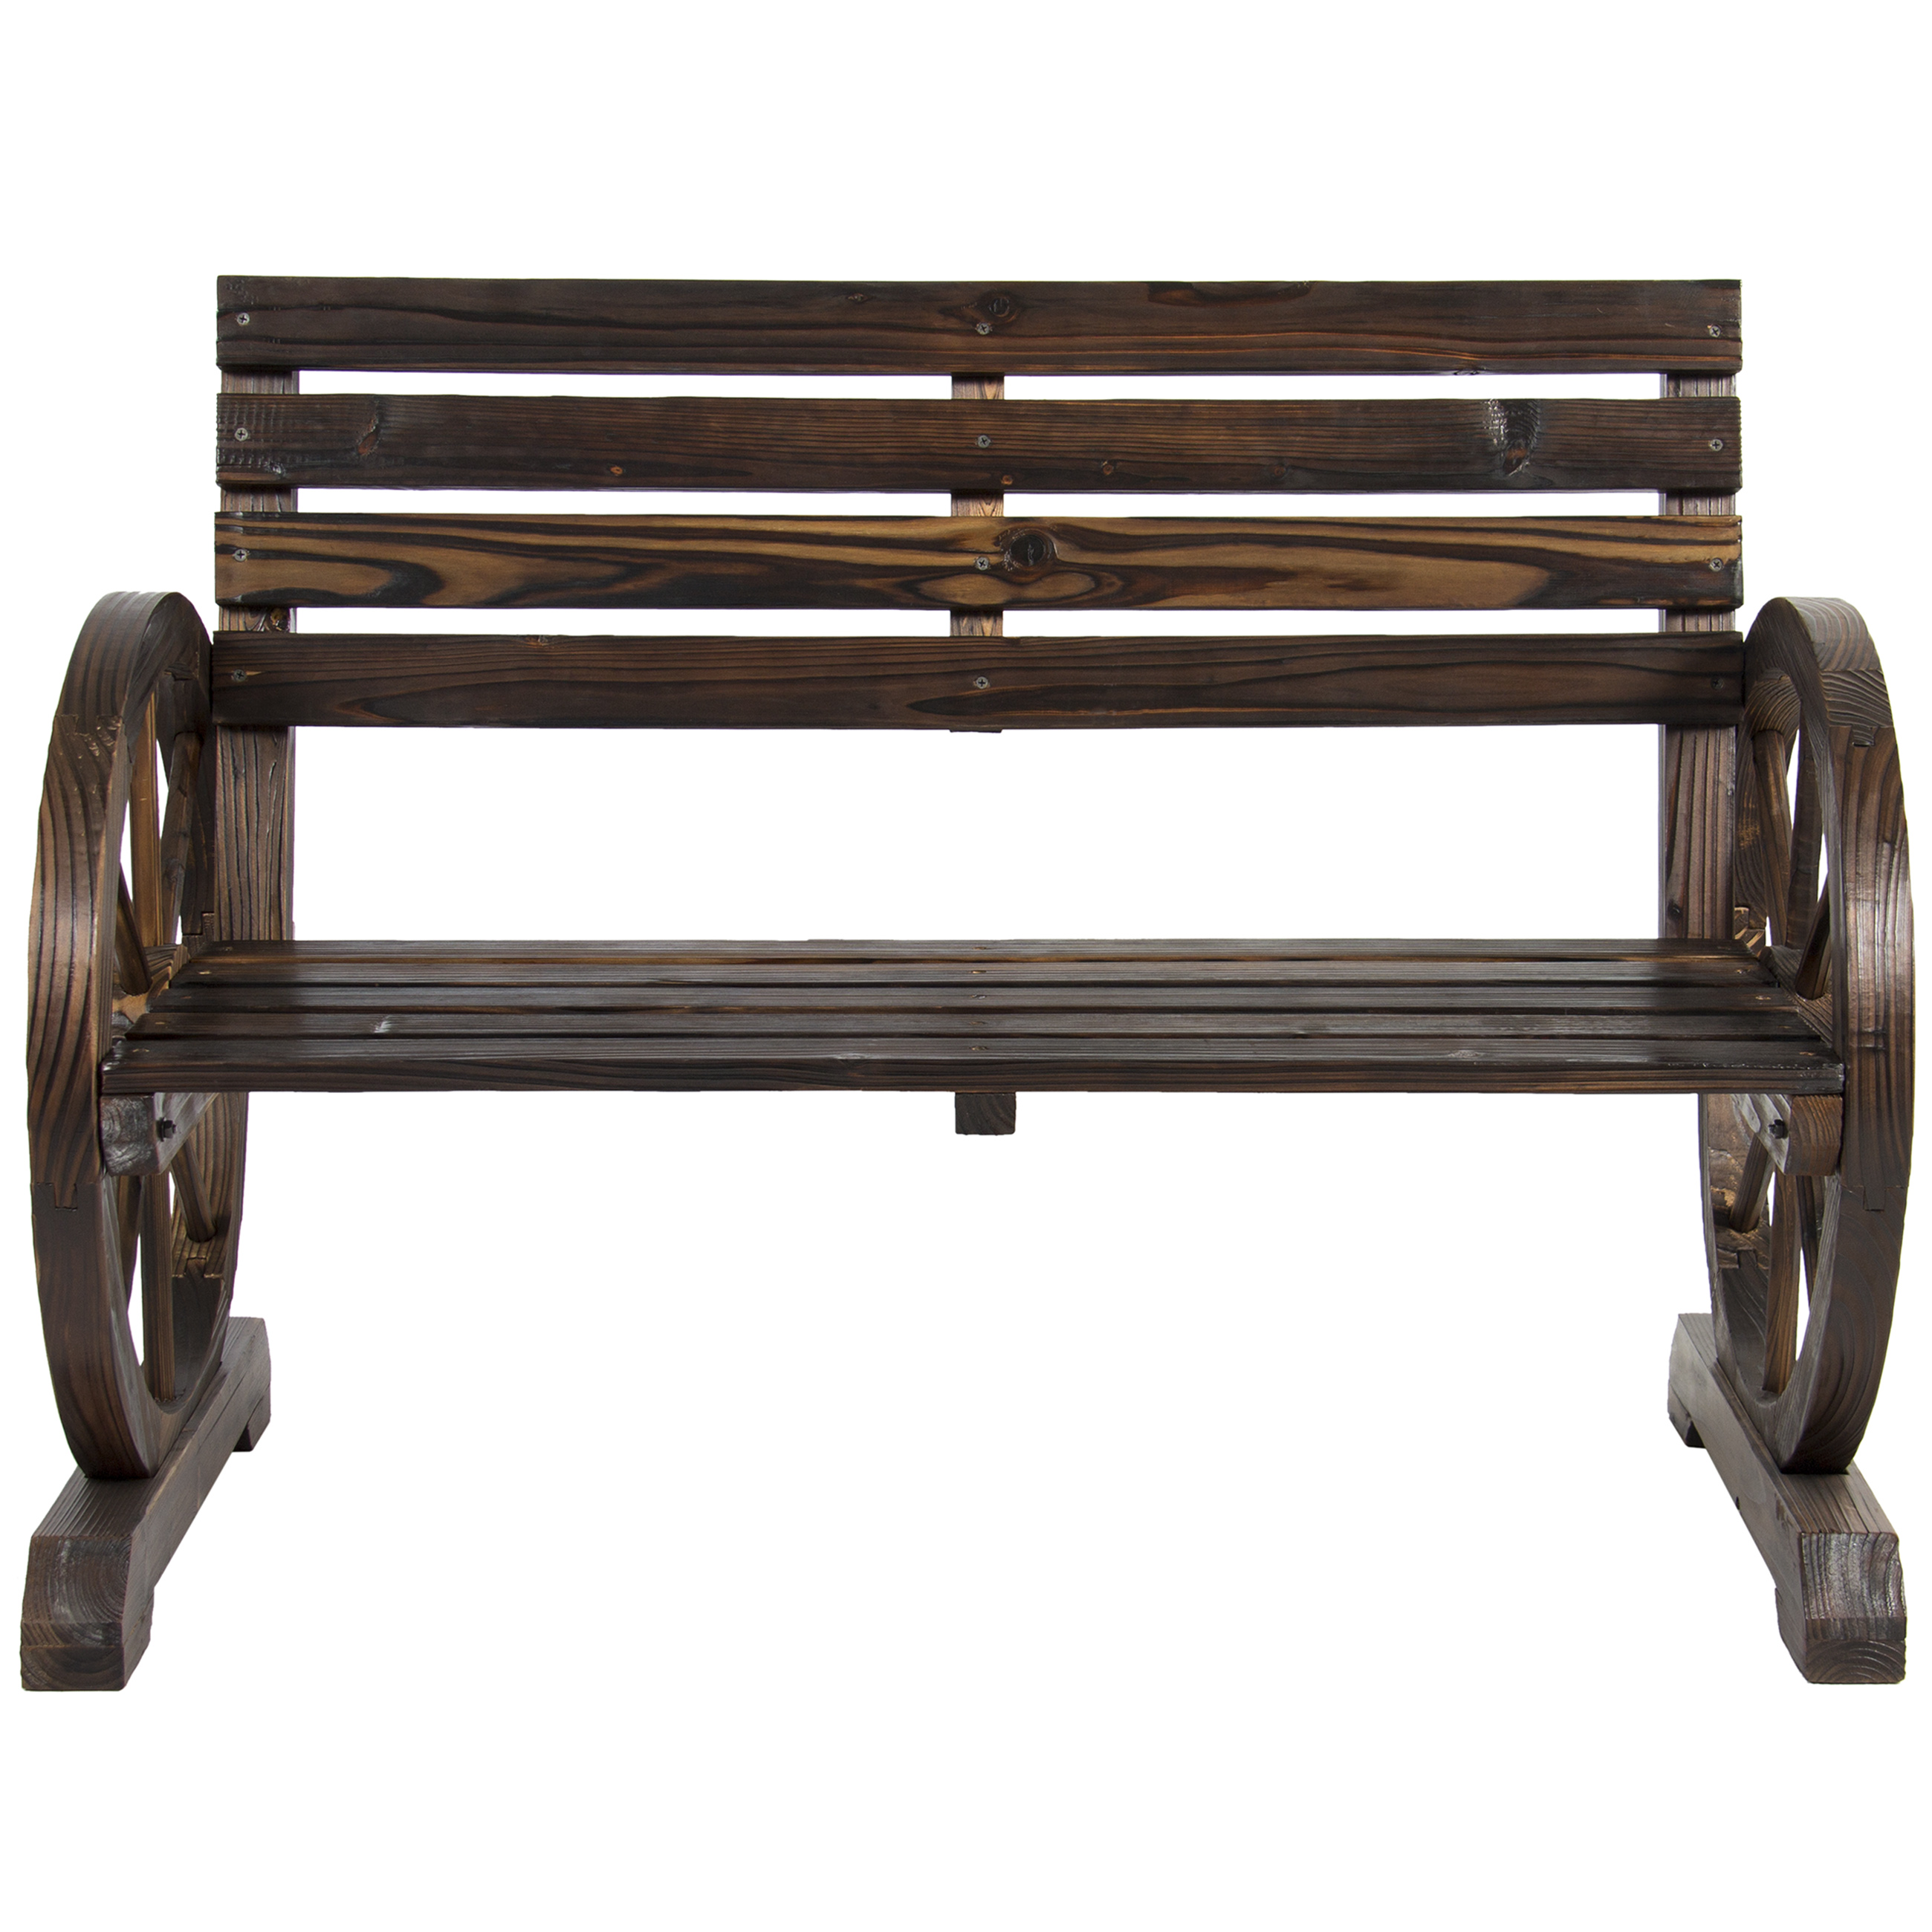 Marvelous Patio Outdoor Garden Bench Wood Wagon Wheel Patio Garden Furniture Deck Seat